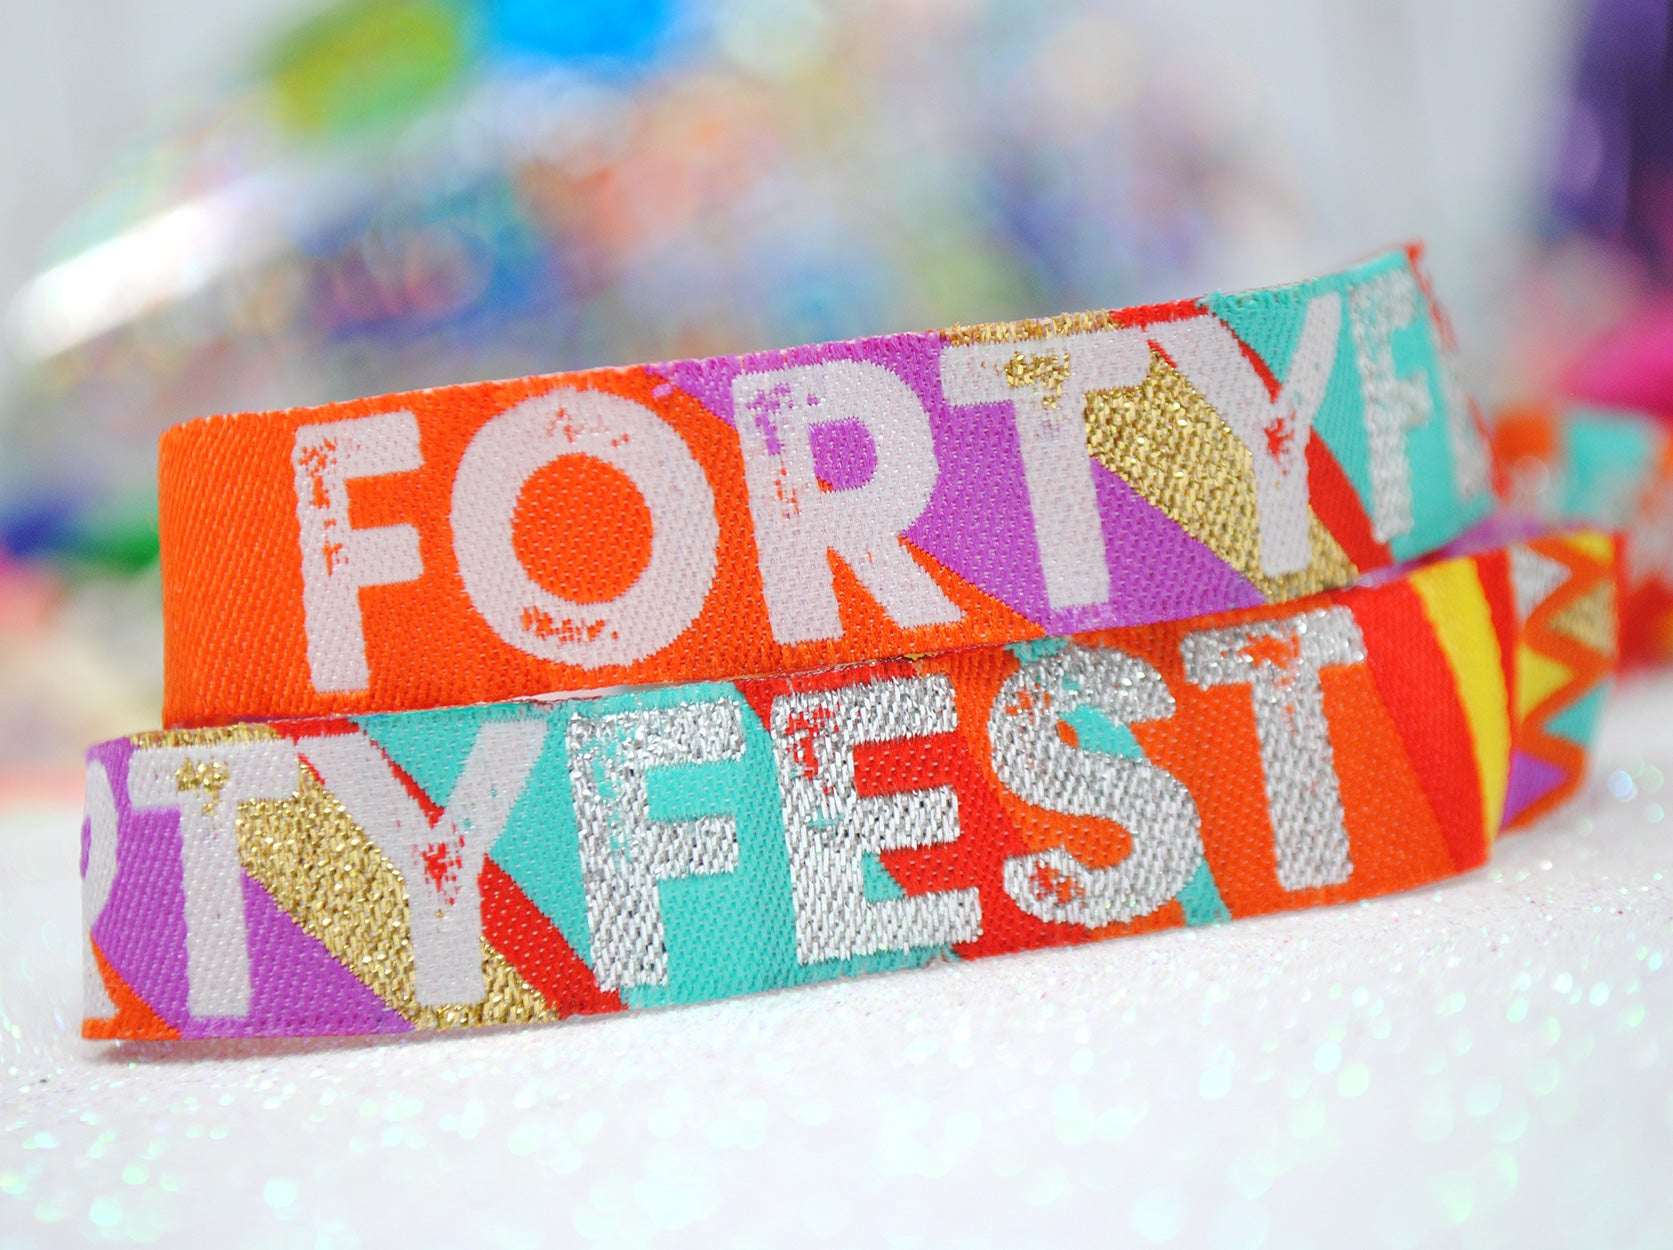 fortyfest 40 fest birthday party wristbands 40th